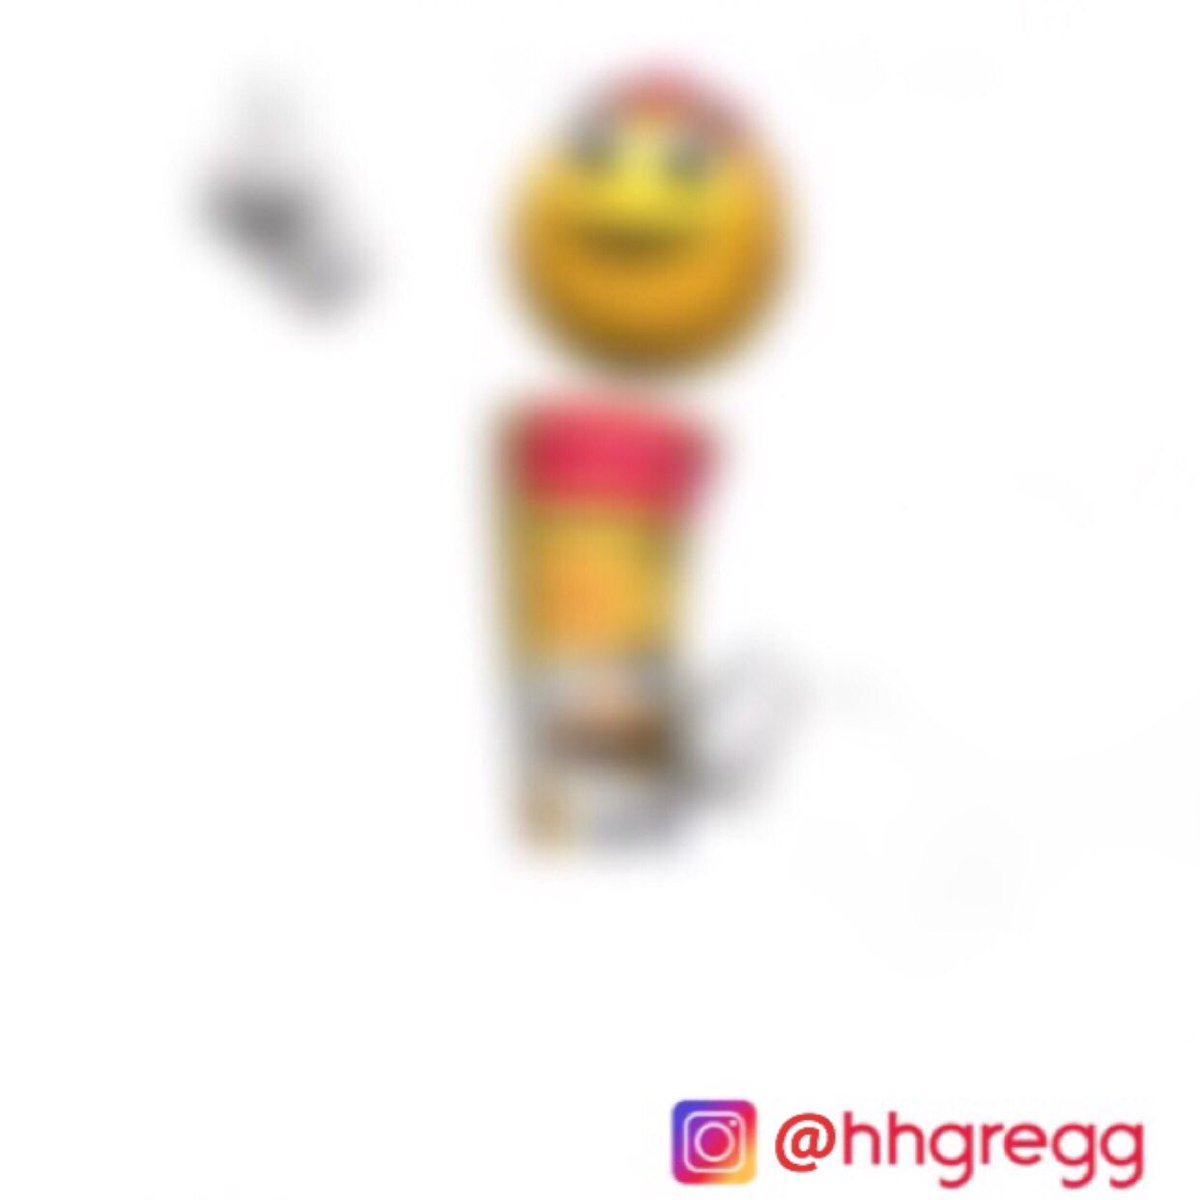 Hhgregg On Twitter A Deal Is A Deal He S Coming Very Soon